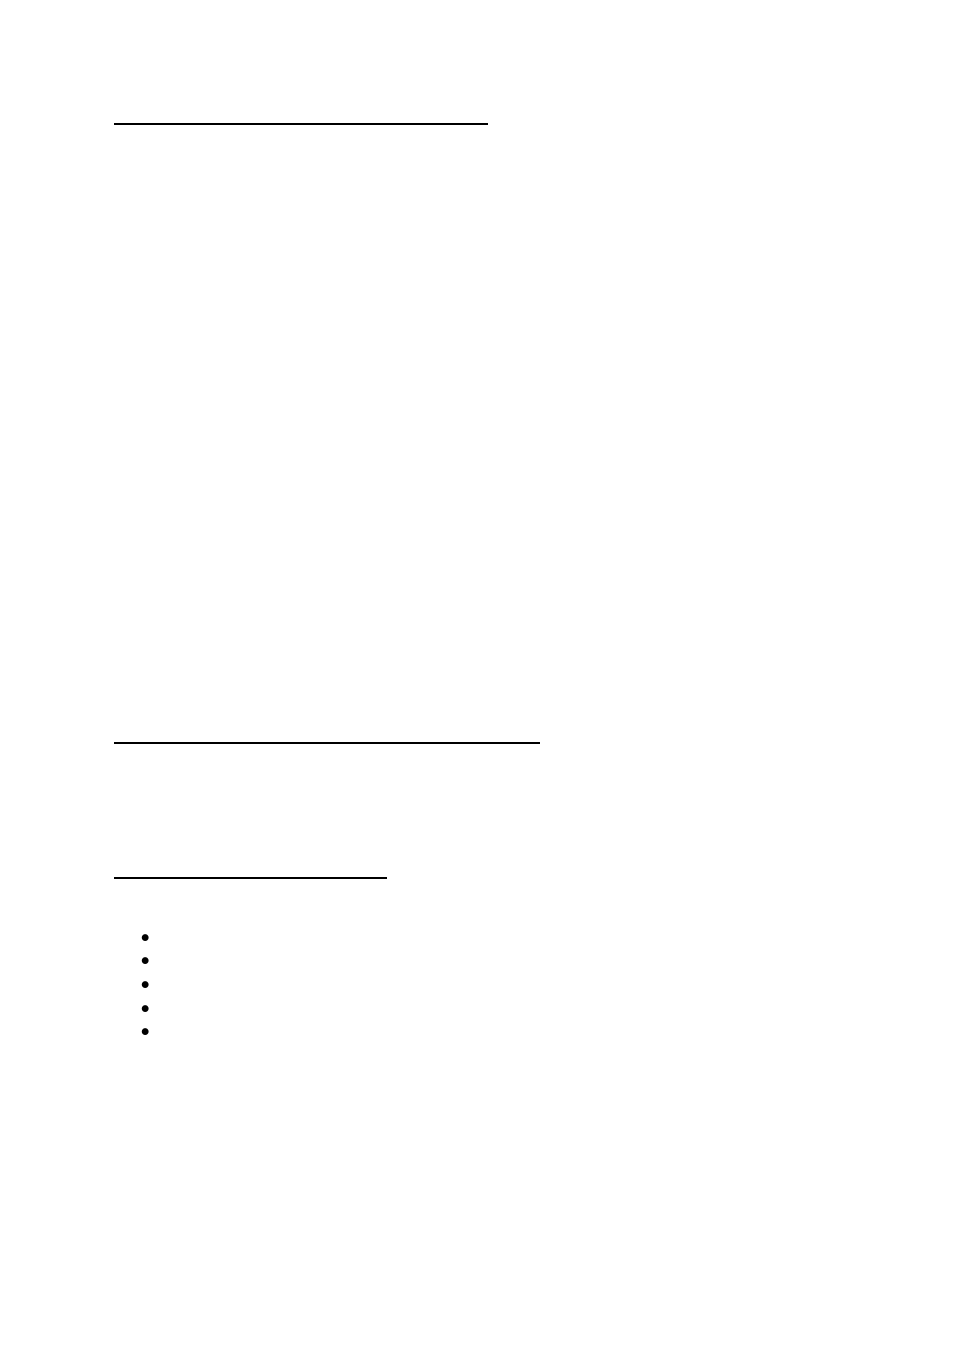 A 3 starting problems, A 4 idling problems | Haltech F9A User Manual